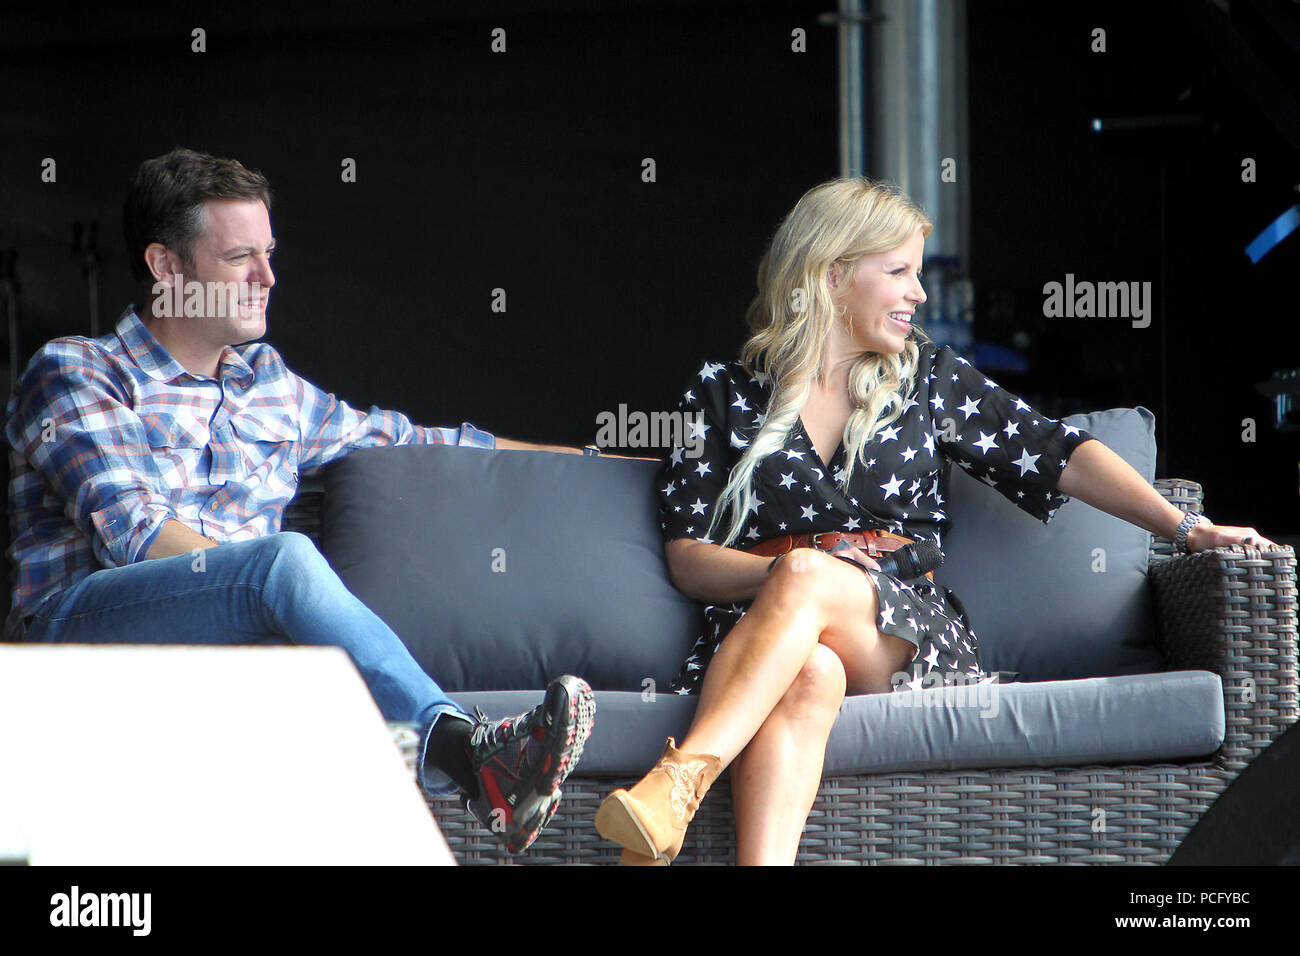 matt-baker-and-ellie-harrison-on-stage-during-the-first-day-of-countryfile-live-which-is-on-for-four-days-at-blenheim-palace-picture-ric-mellis-282018-credit-ric-mellisalamy-live-news-PCFYBC.jpg